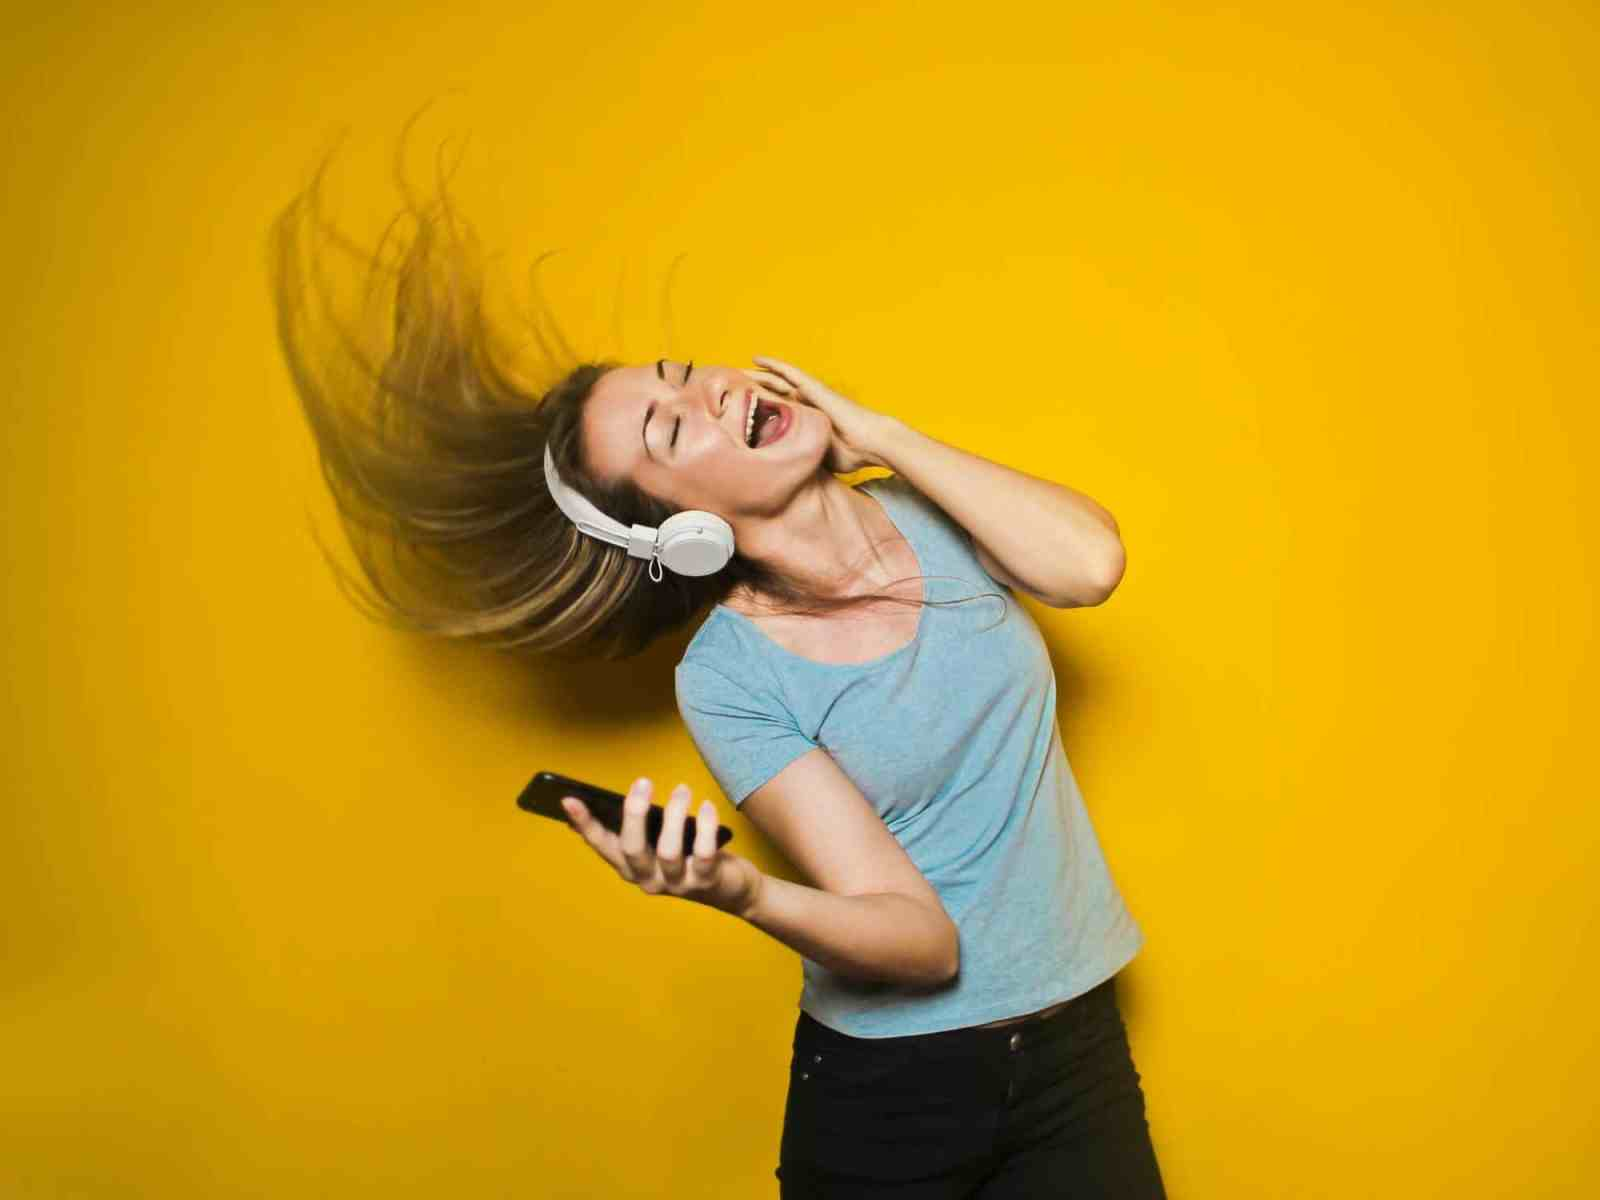 Breakup songs are there to get you through some of the msot difficult of times. Here's a list of some of the best breakup songs for girls!